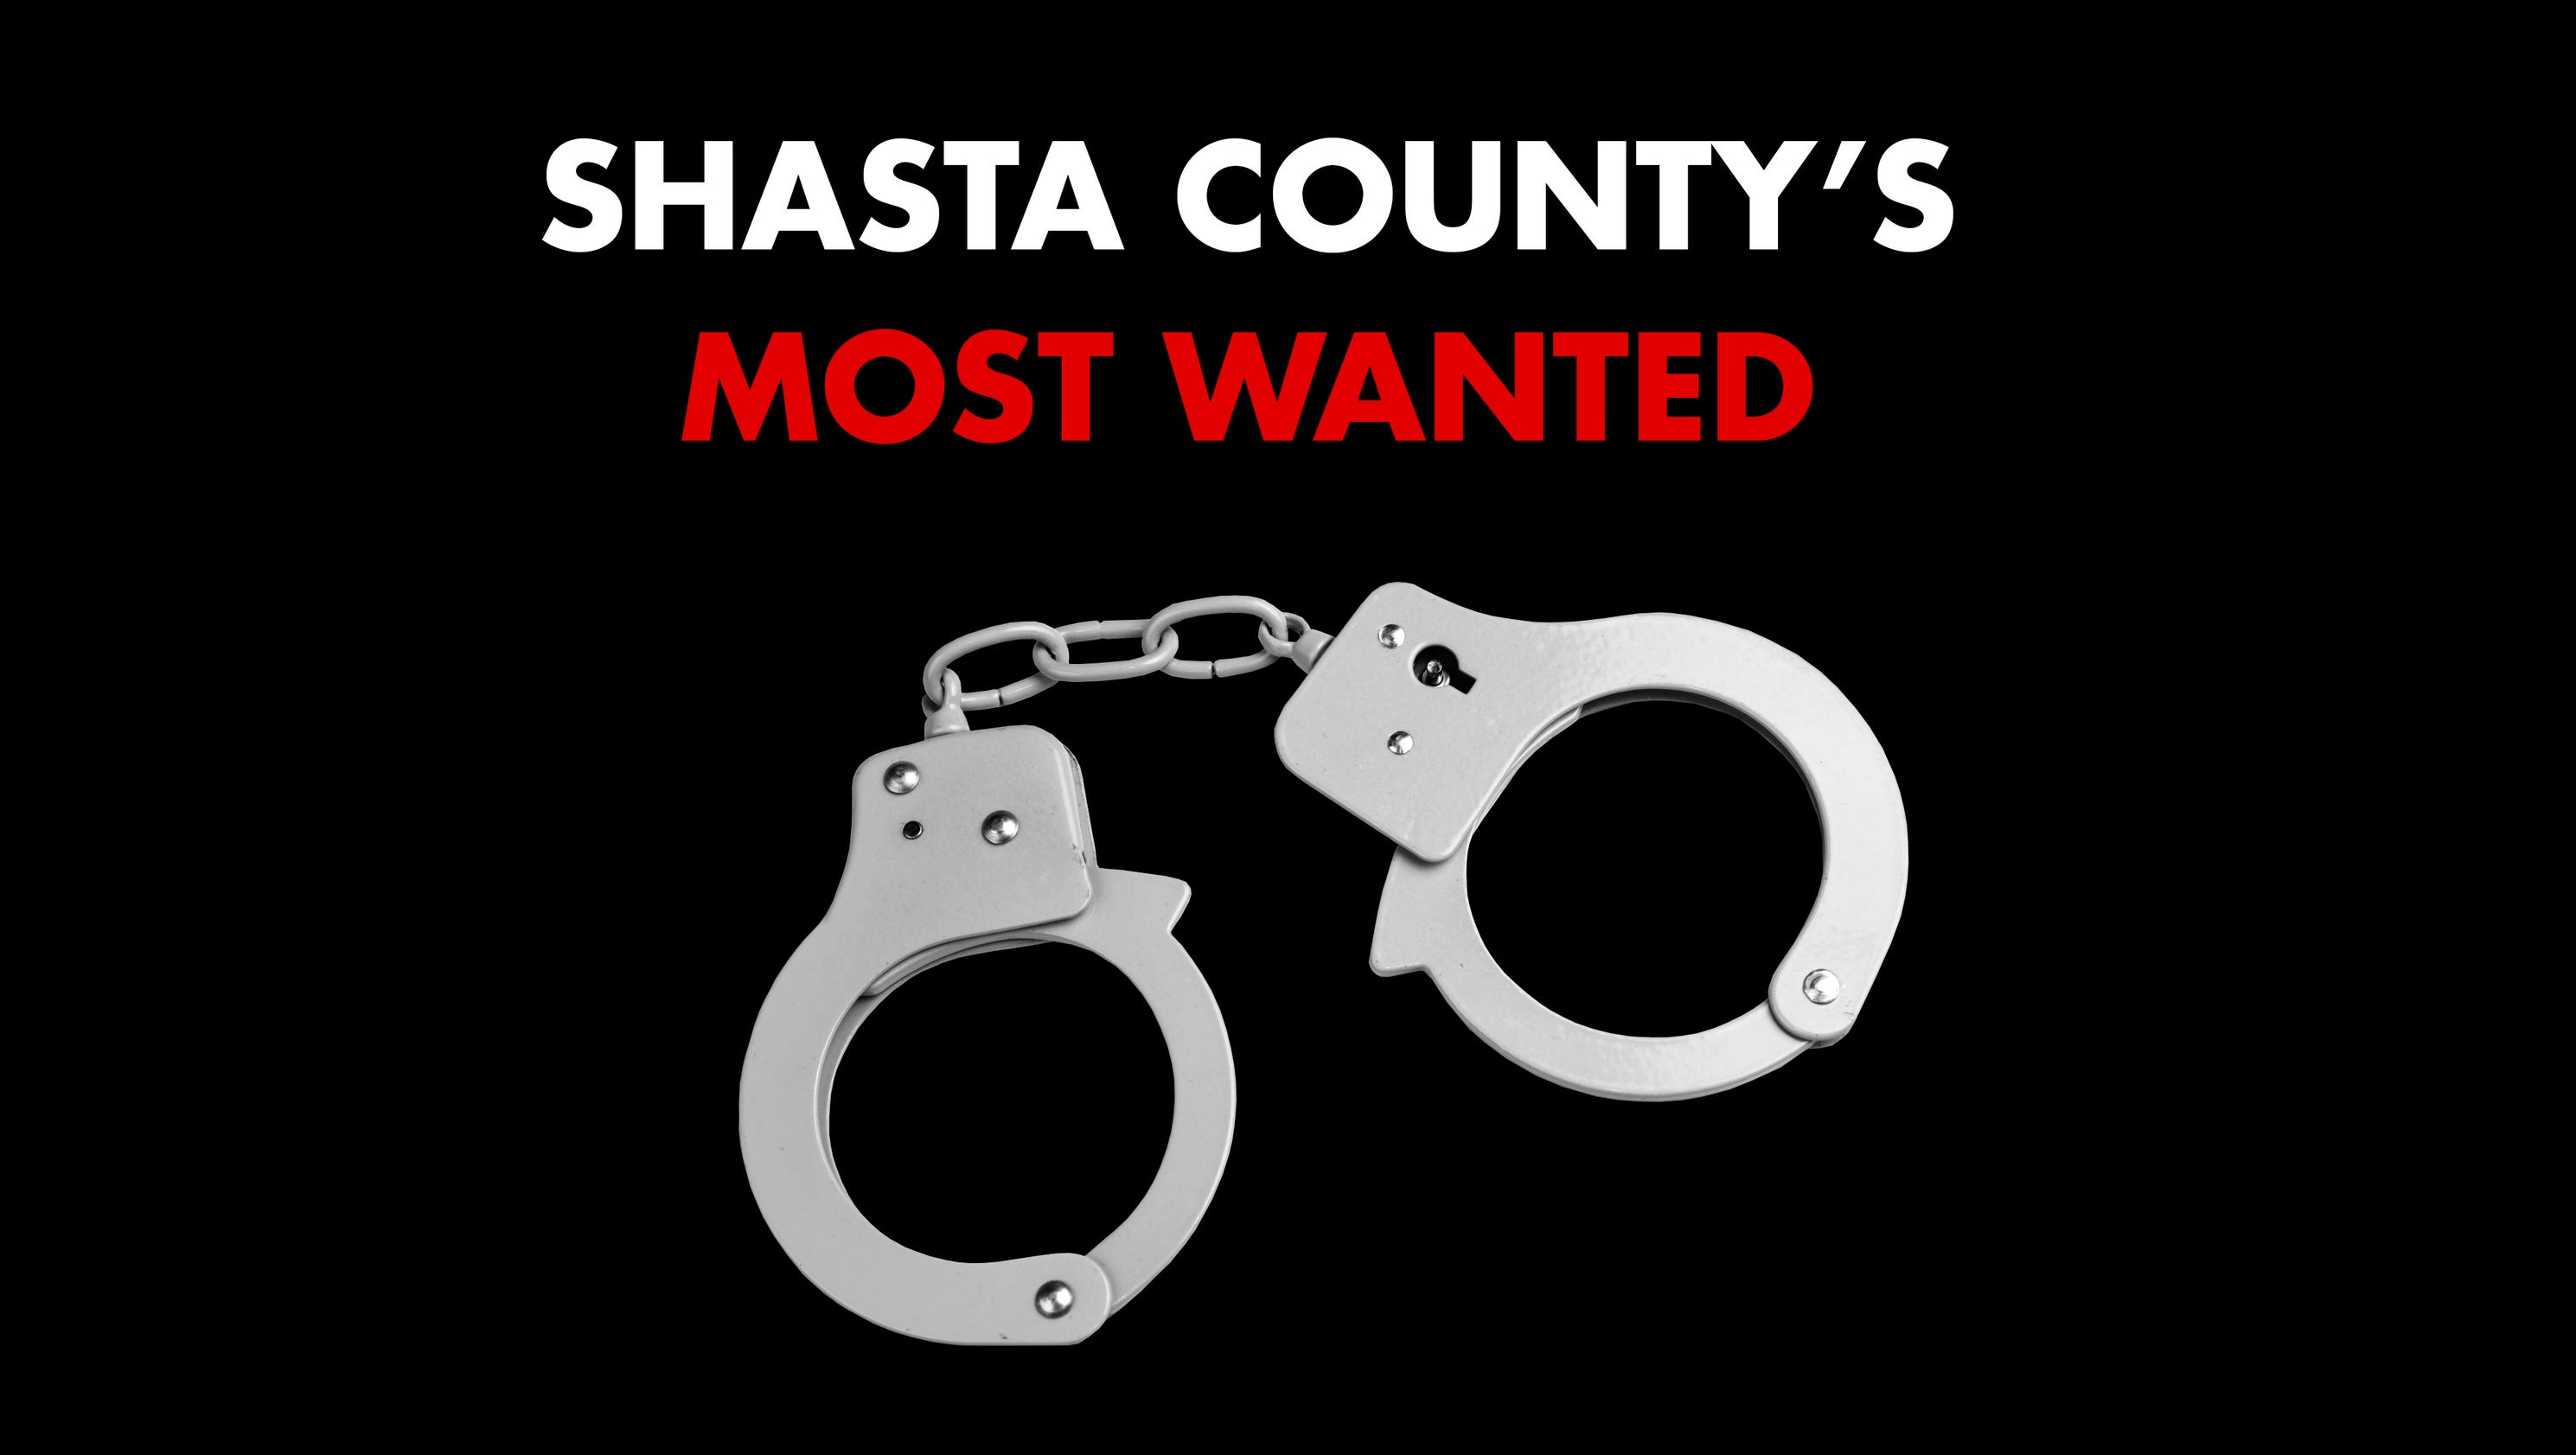 shasta s most wanted feb 5 2017